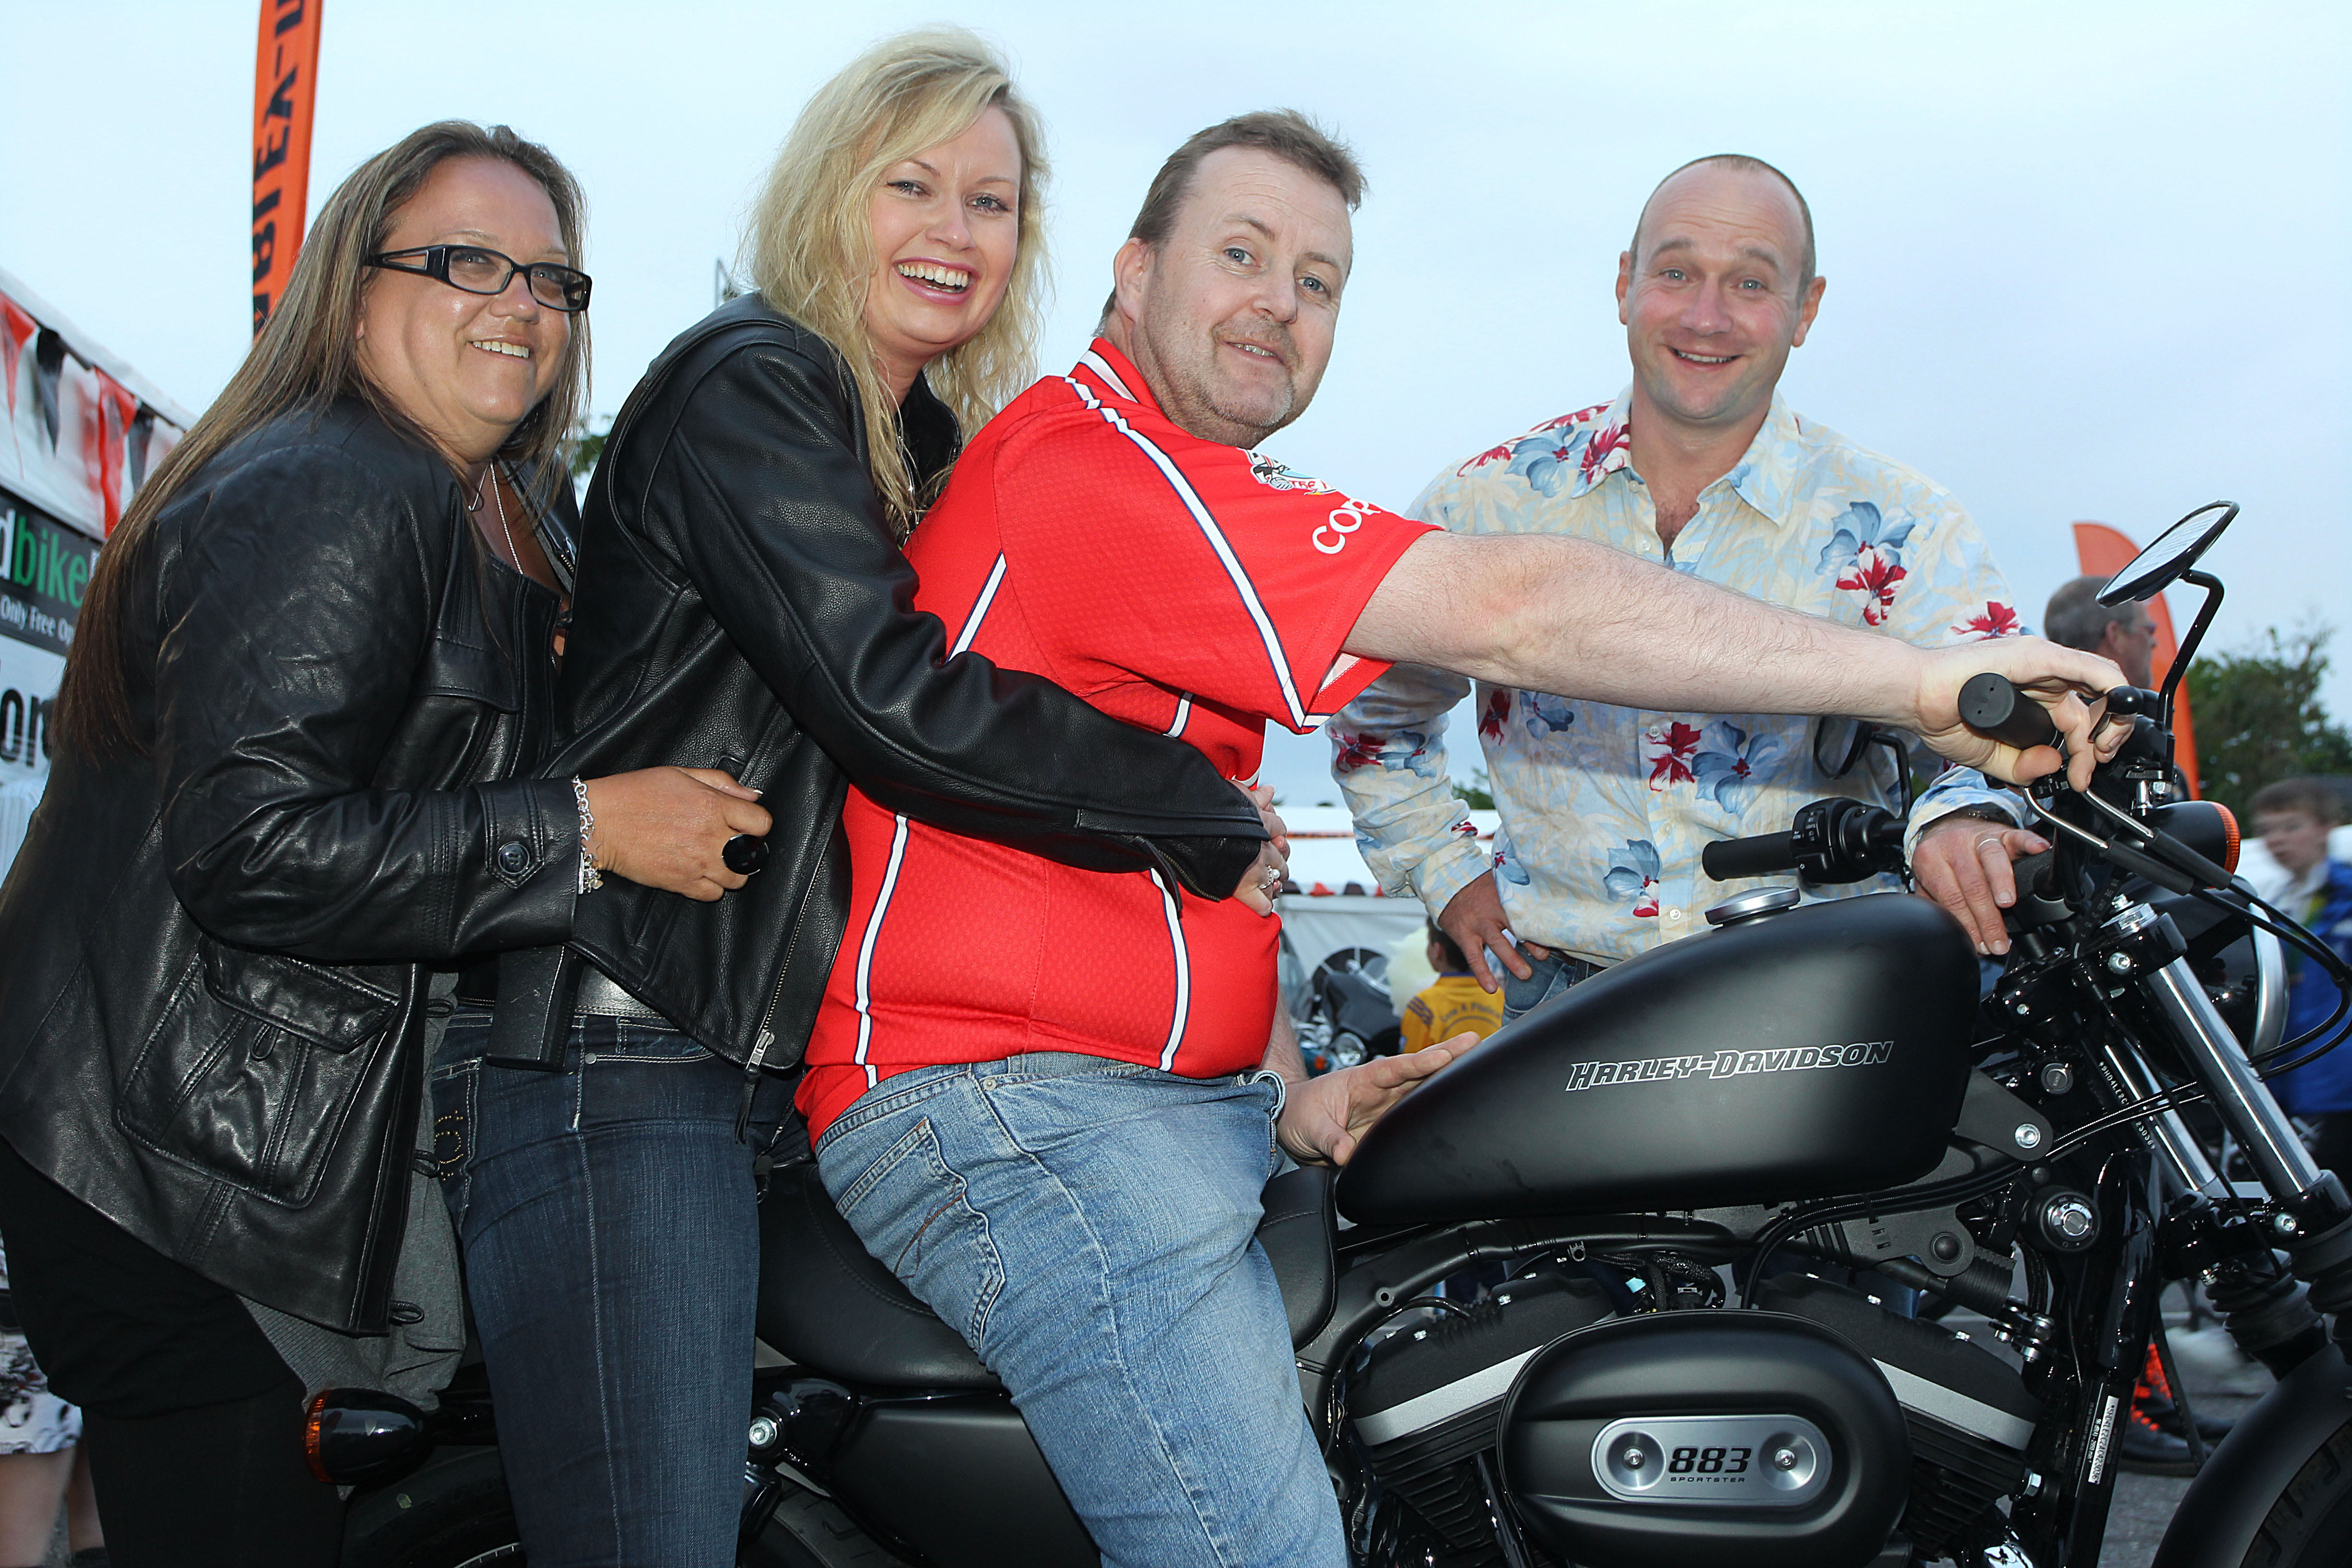 Winner alright....John McKeown, Freemount, who won a Harley Davidson Bike in the International BikeFest draw in Killarney in aid of Muscular Dystorphy Ireland (MDI) at the weekend, also included is Alison Povey, Harley Davidson Marketing Manager, Breffni Ingerton, Director, International BikeFest and Comedian Alan Shortt.Photo:Valerie O'Sullivan